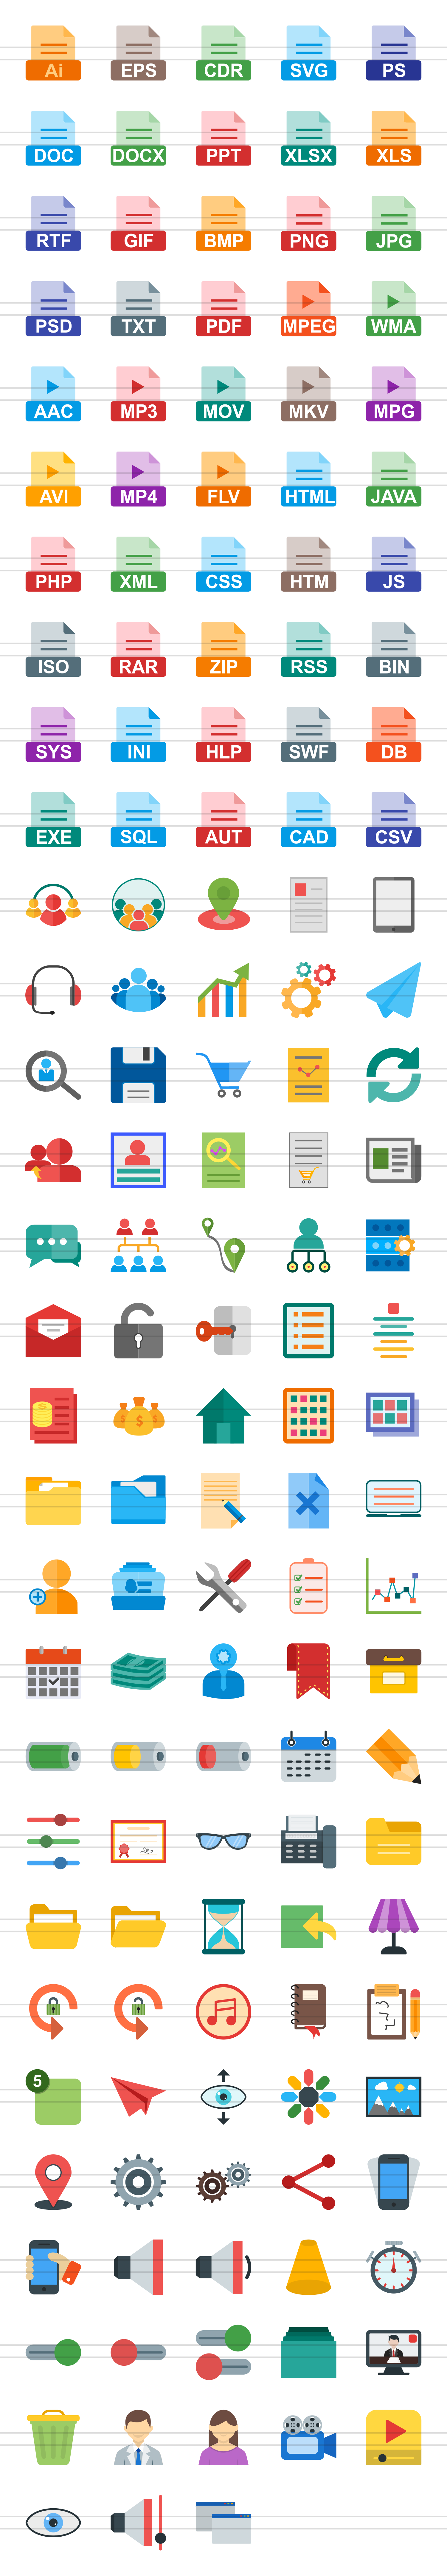 148 Files & Folders Flat Icons example image 3